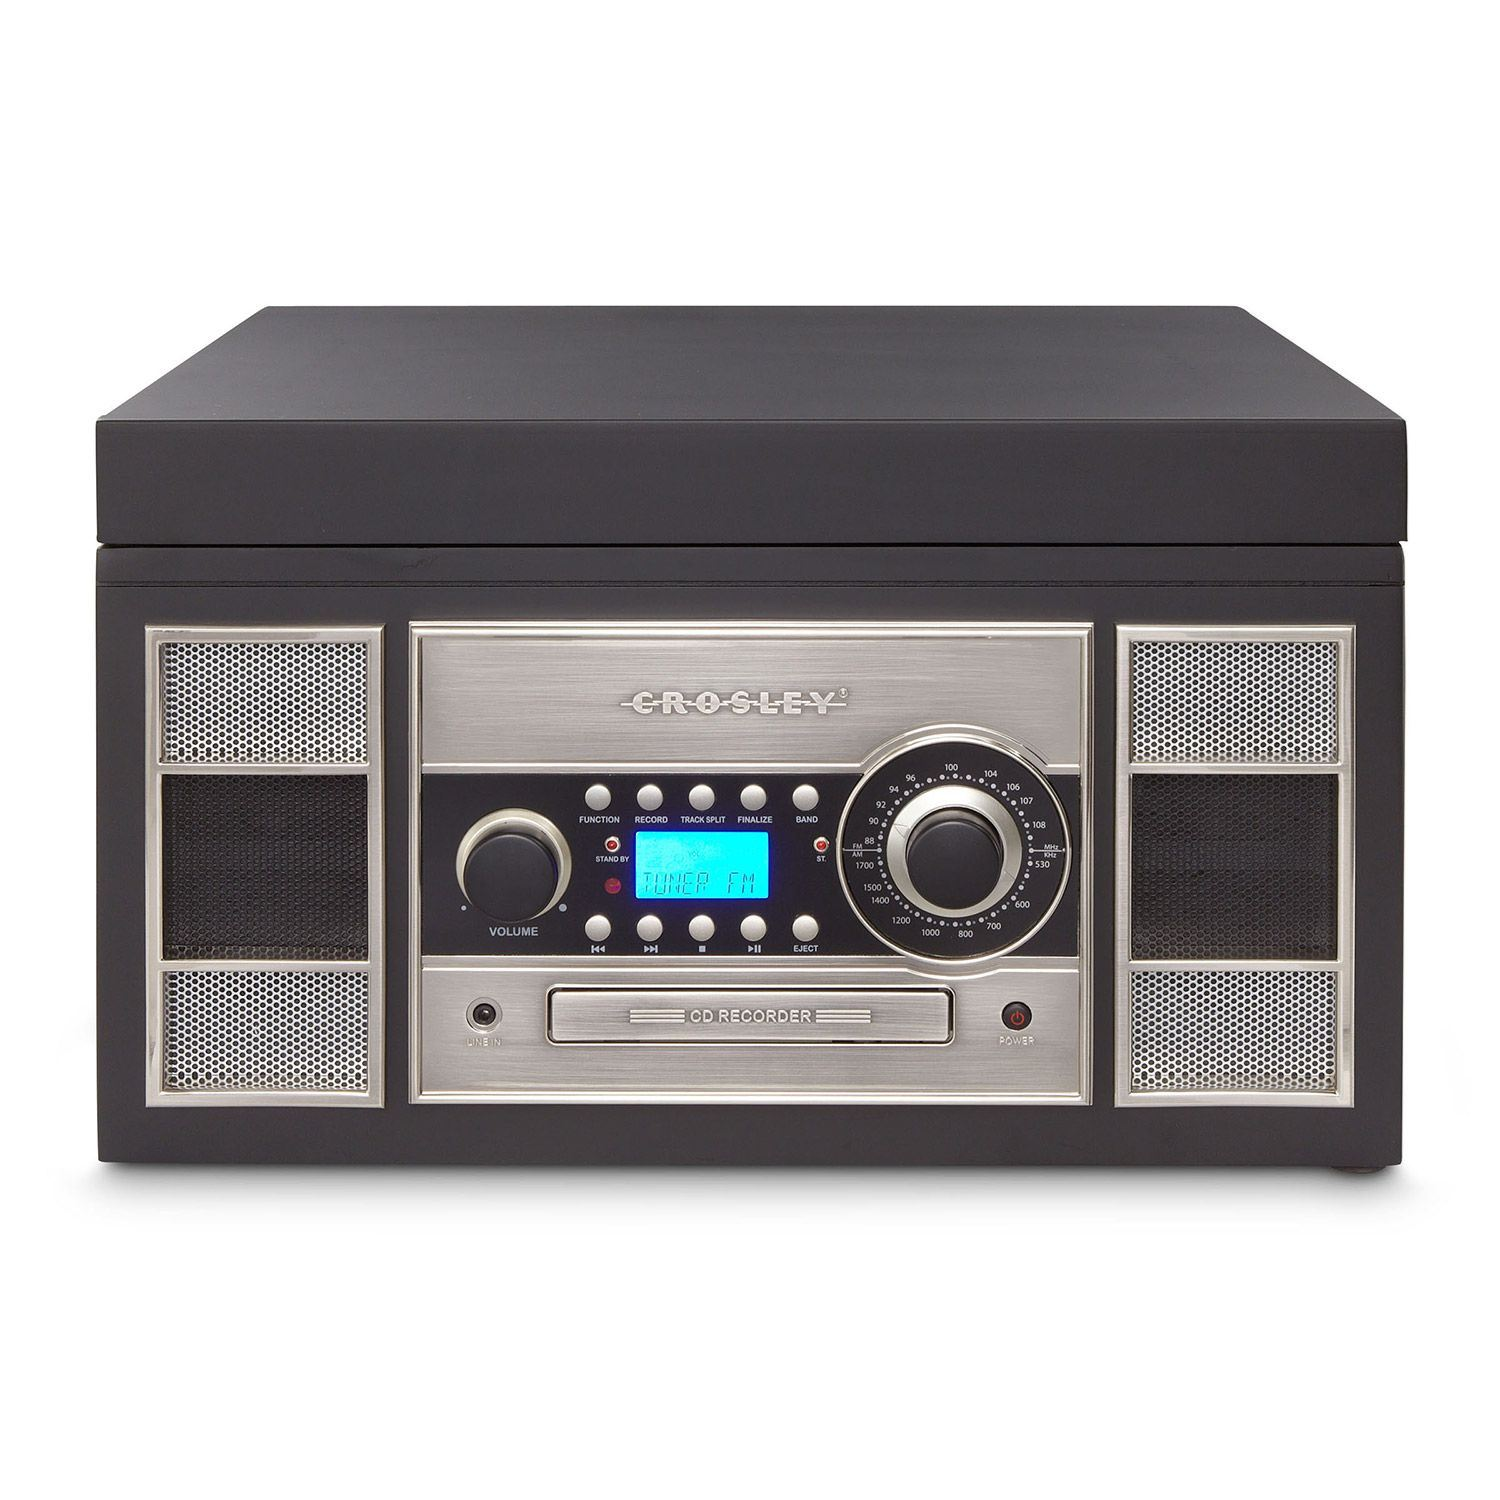 Picture of Memory Master Ii Cd Recorder, Black *D